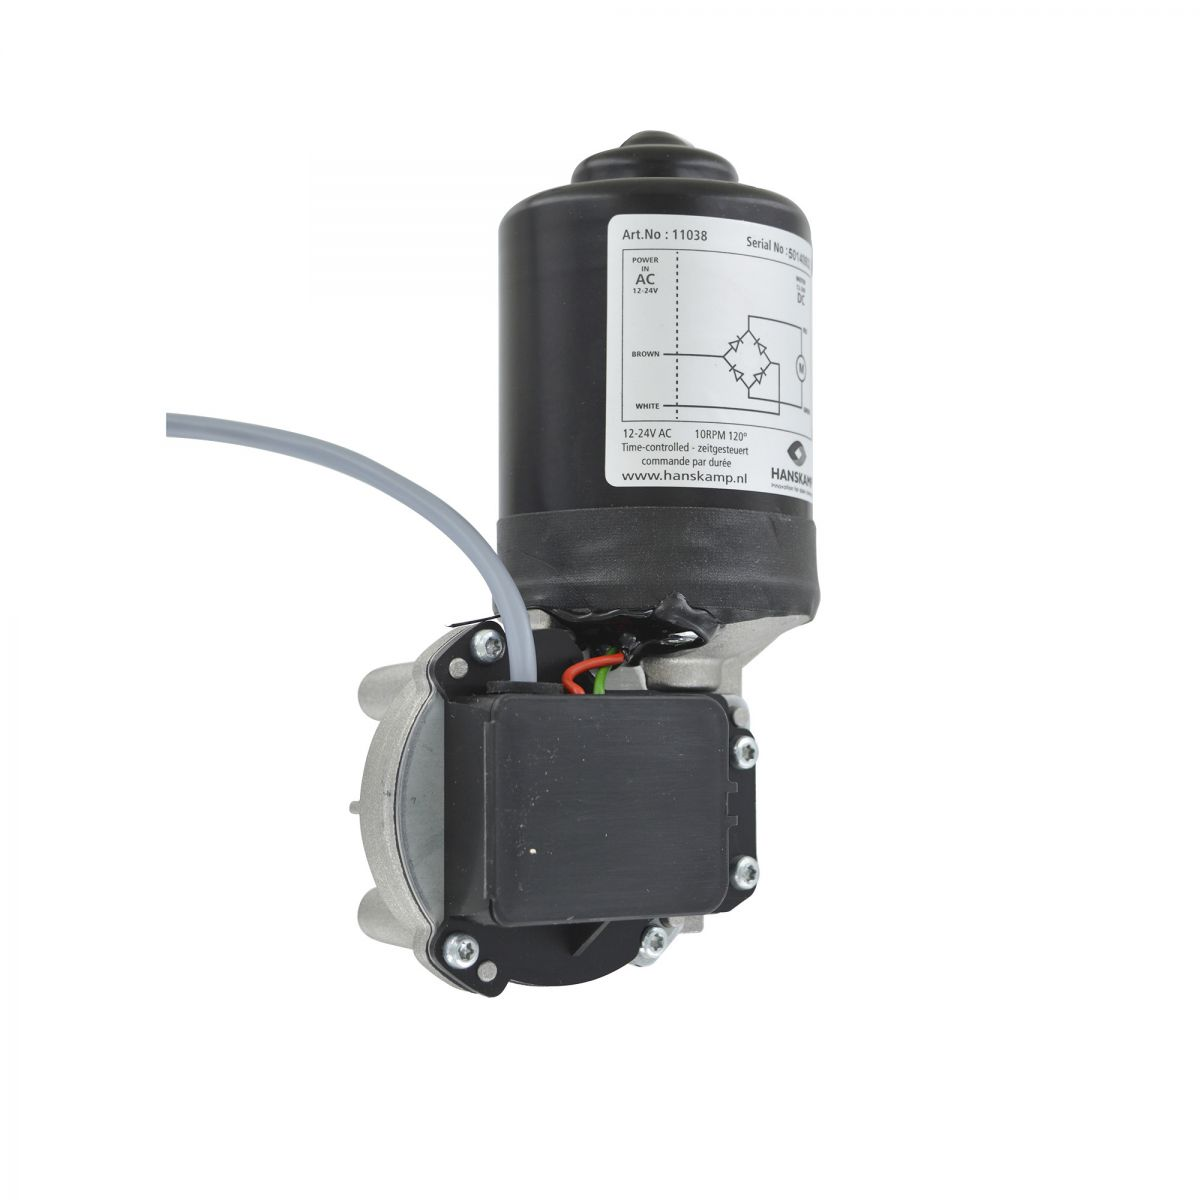 motor 24v ac 10rpm timecontrolled for multidos